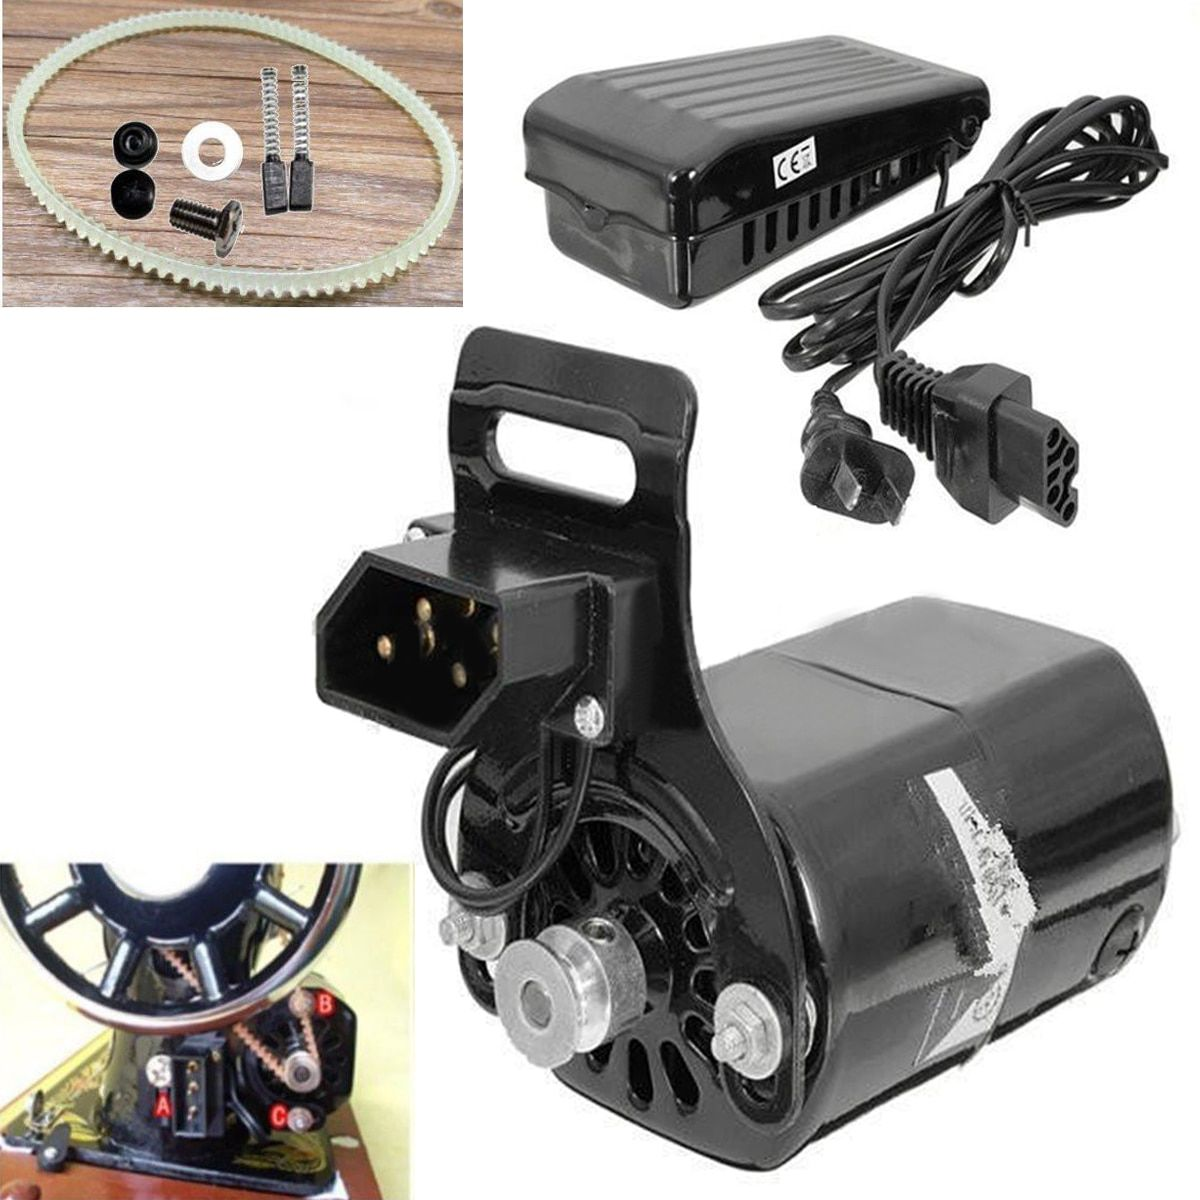 220V 180W 0.9A Black Domestic Household Sewing Machine Electric Motor 5000 rpm + Durable Controller Variable Speed Pedal Mayitr